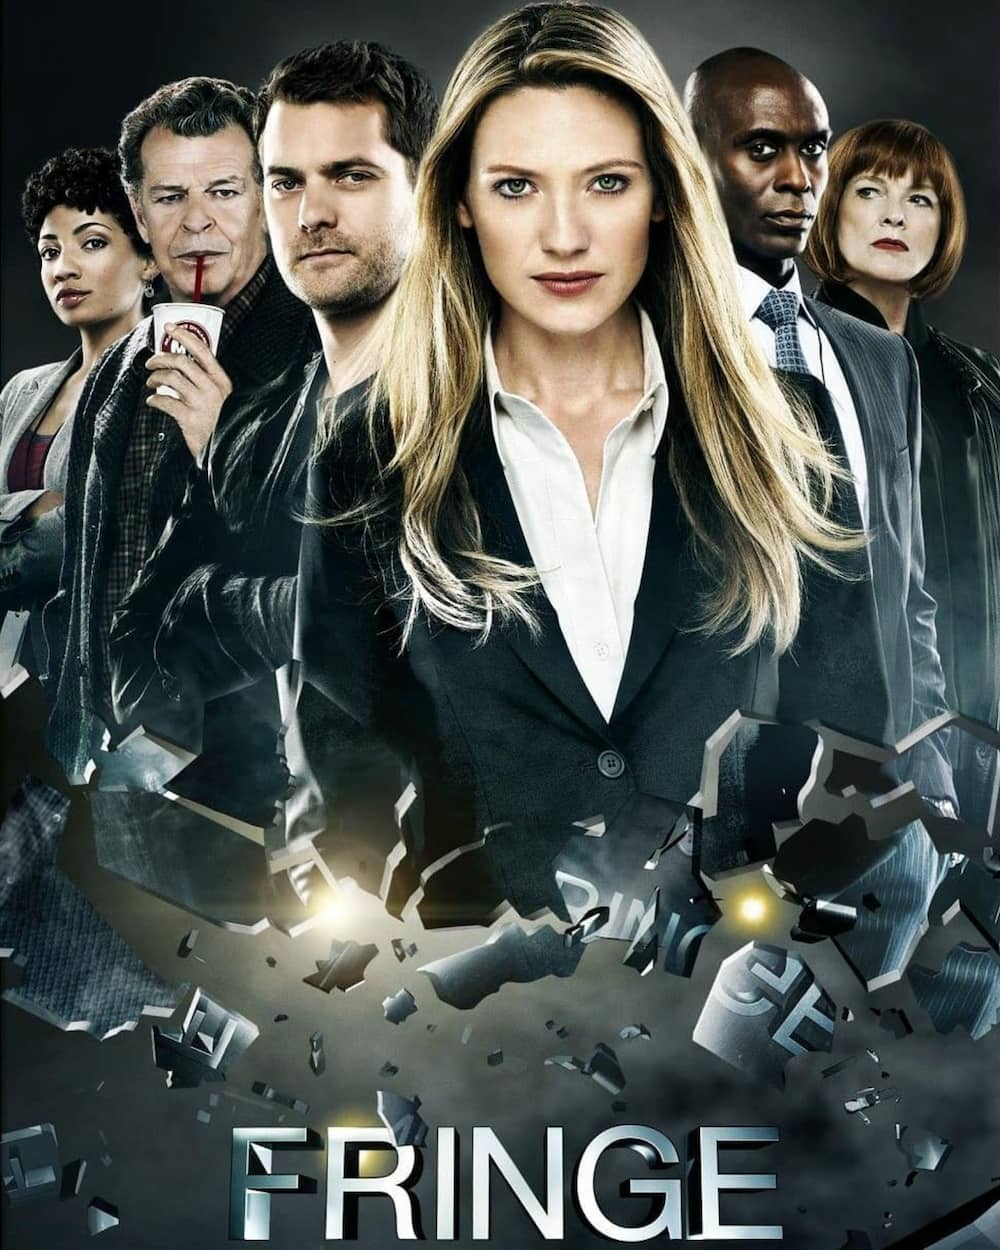 Anna Torv movies and TV shows